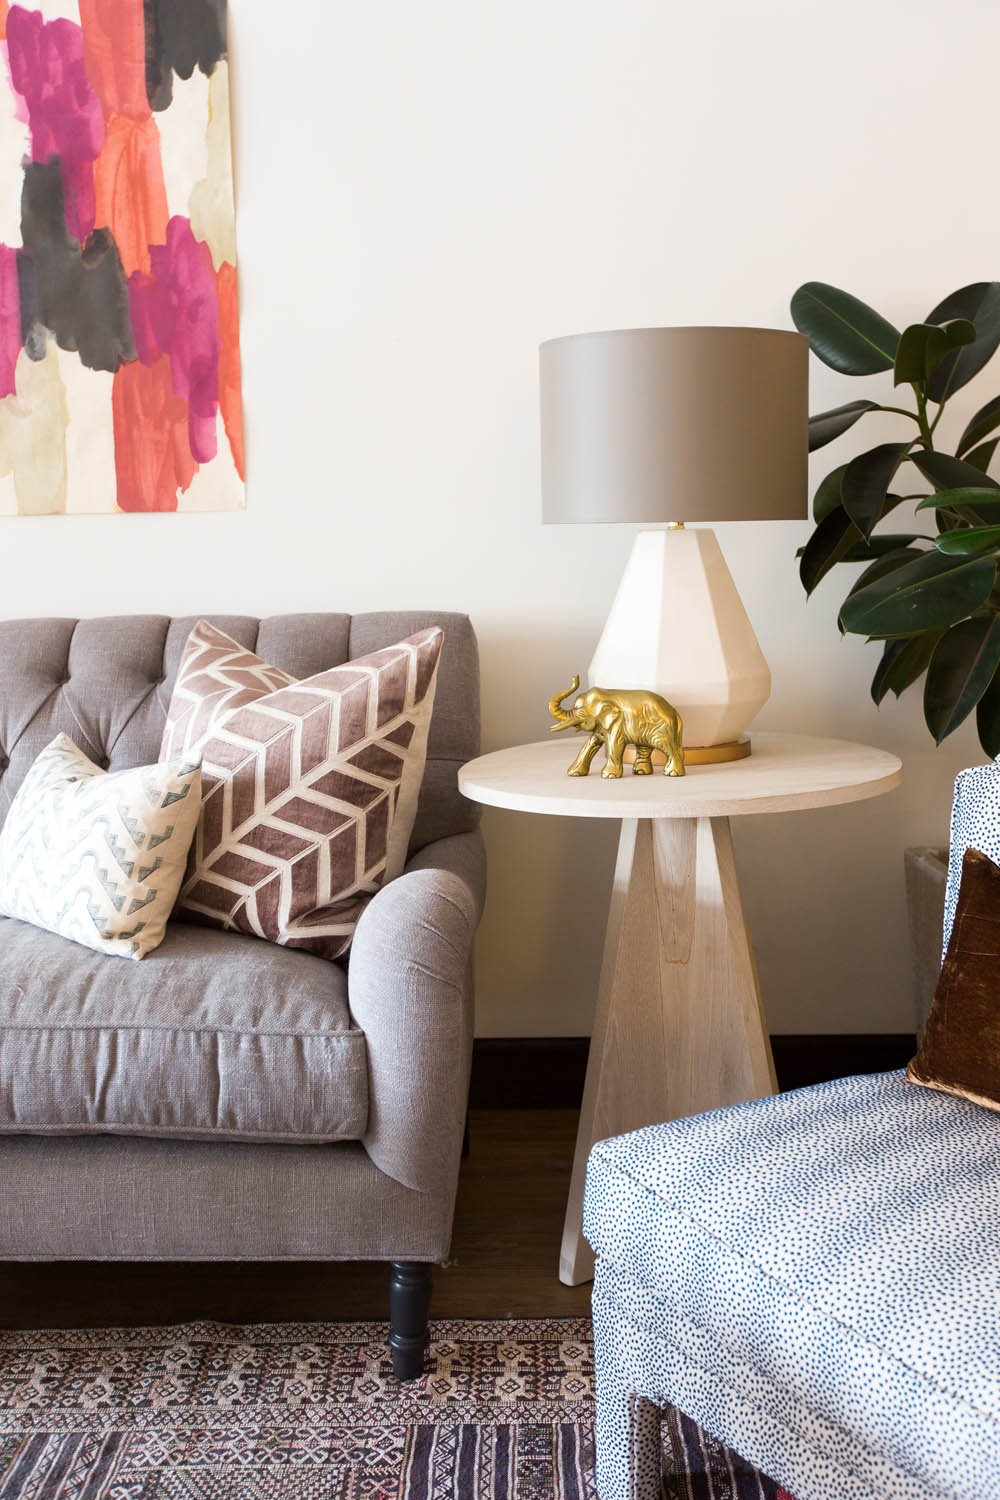 shop tour coveted home in kansas city mo rue